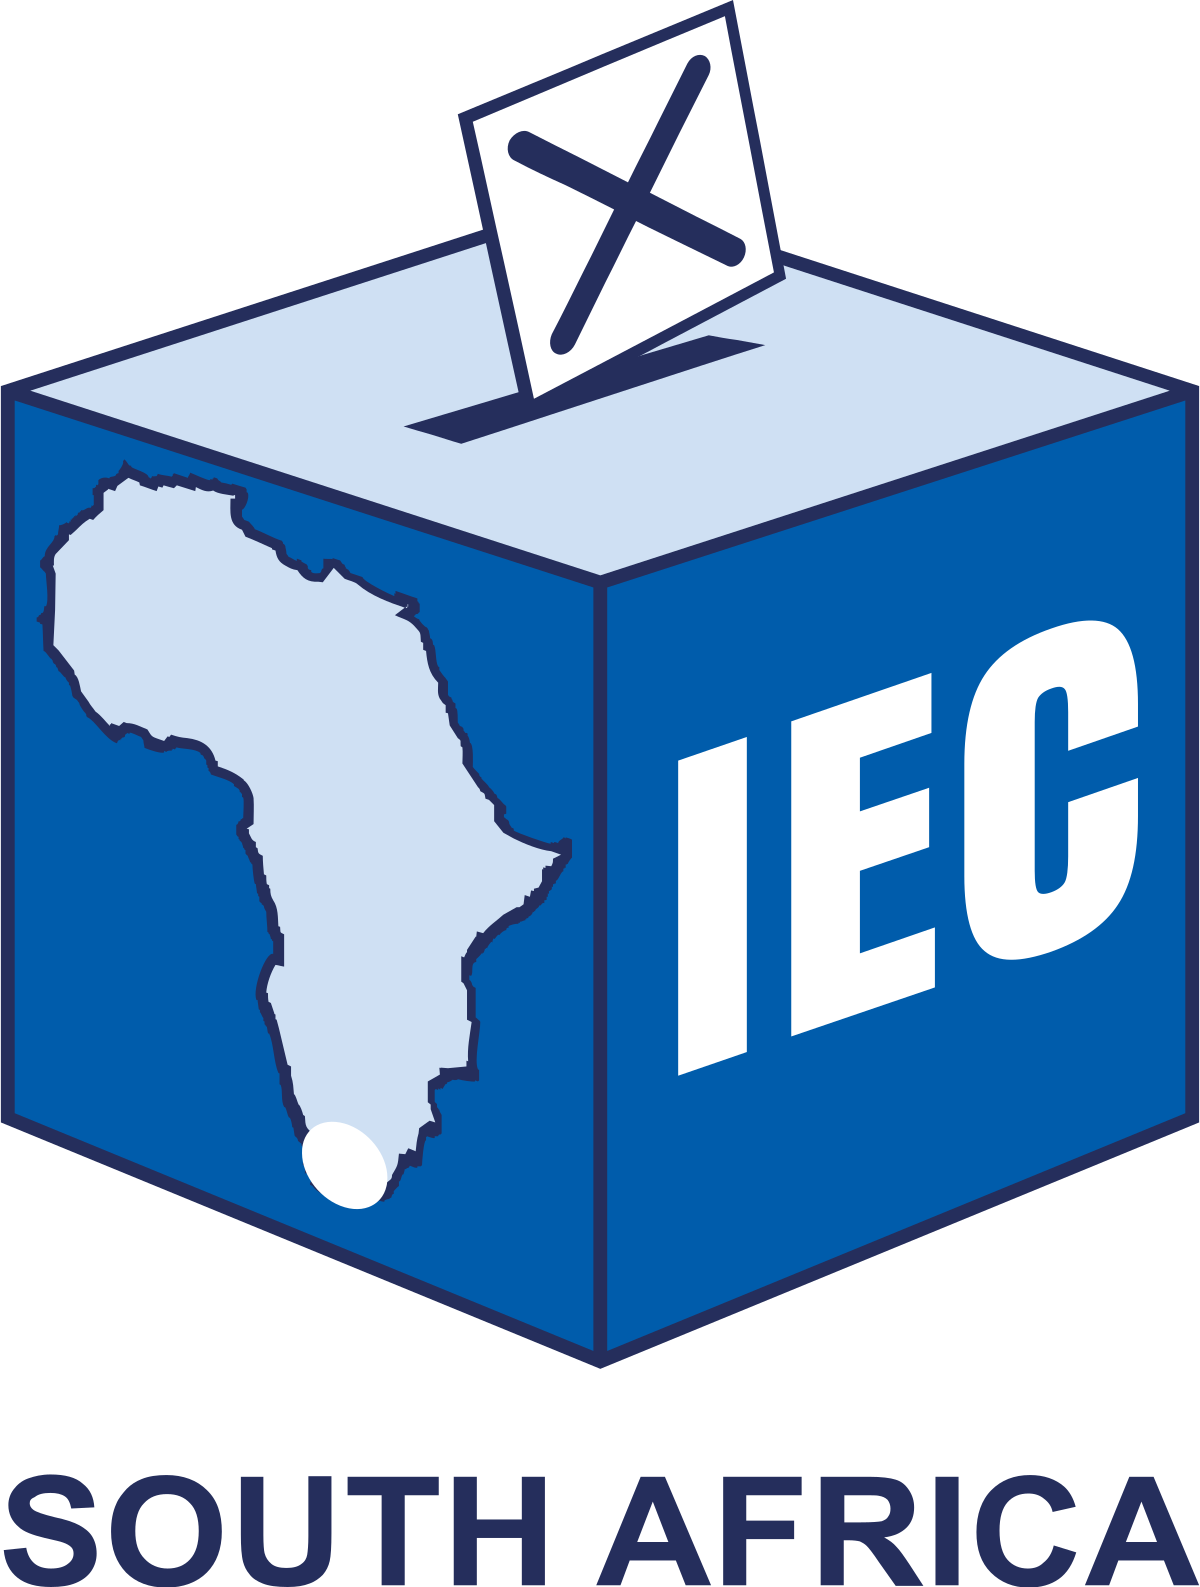 Democracy clipart voting congress. South africa s general